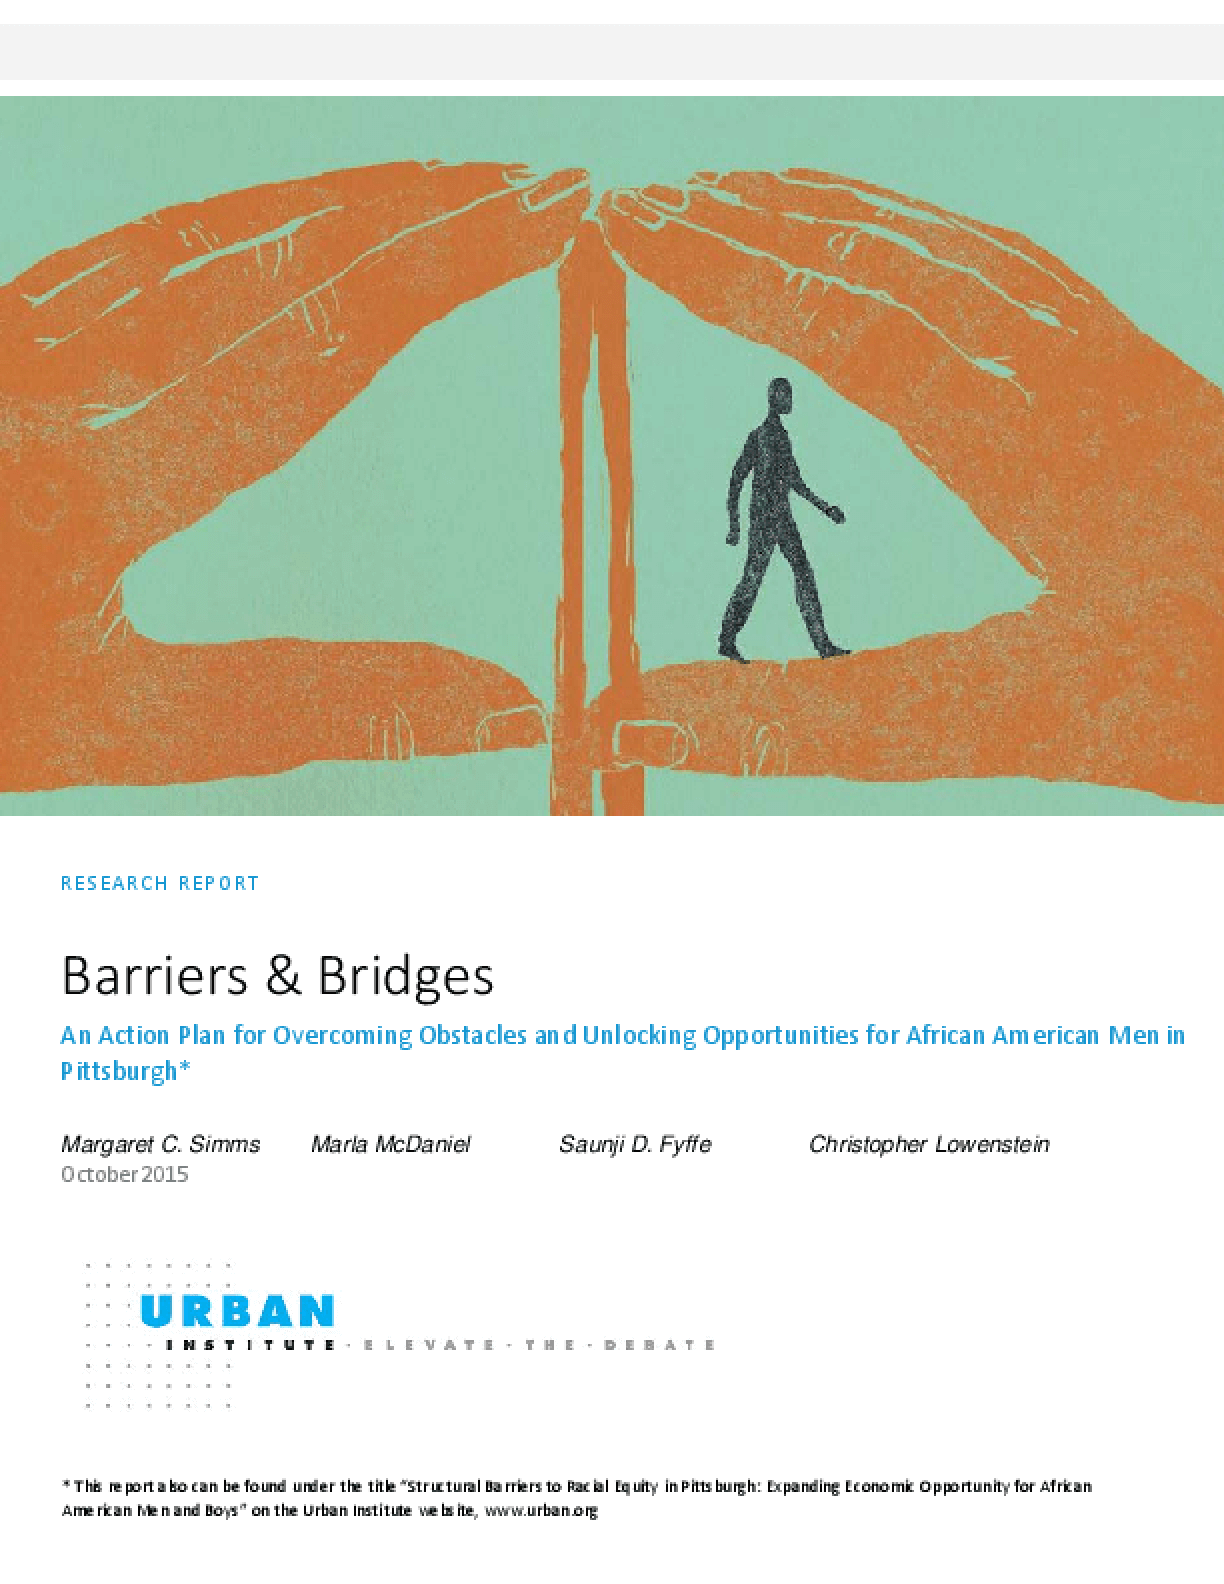 Barriers and Bridges: An Action Plan for Overcoming Obstacles and Unlocking Opportunities for African American Men in Pittsburgh